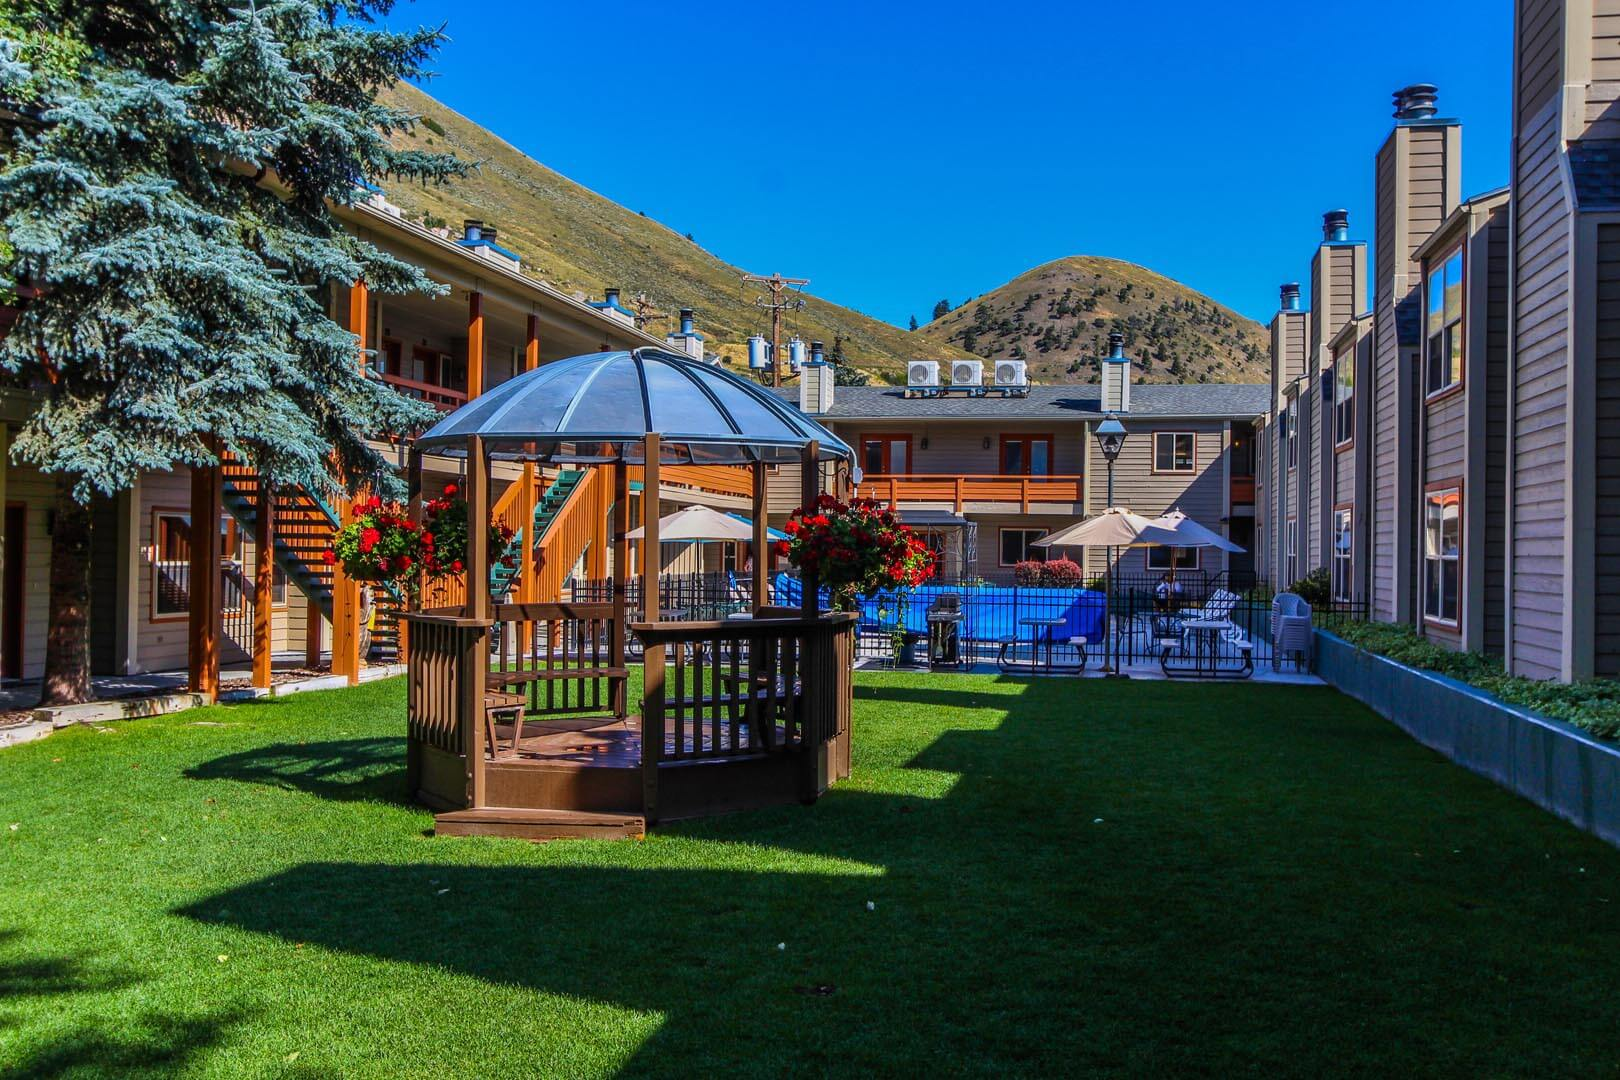 The exterior building and Gazebo at VRI's Jackson Hole Towncenter in Wyoming.